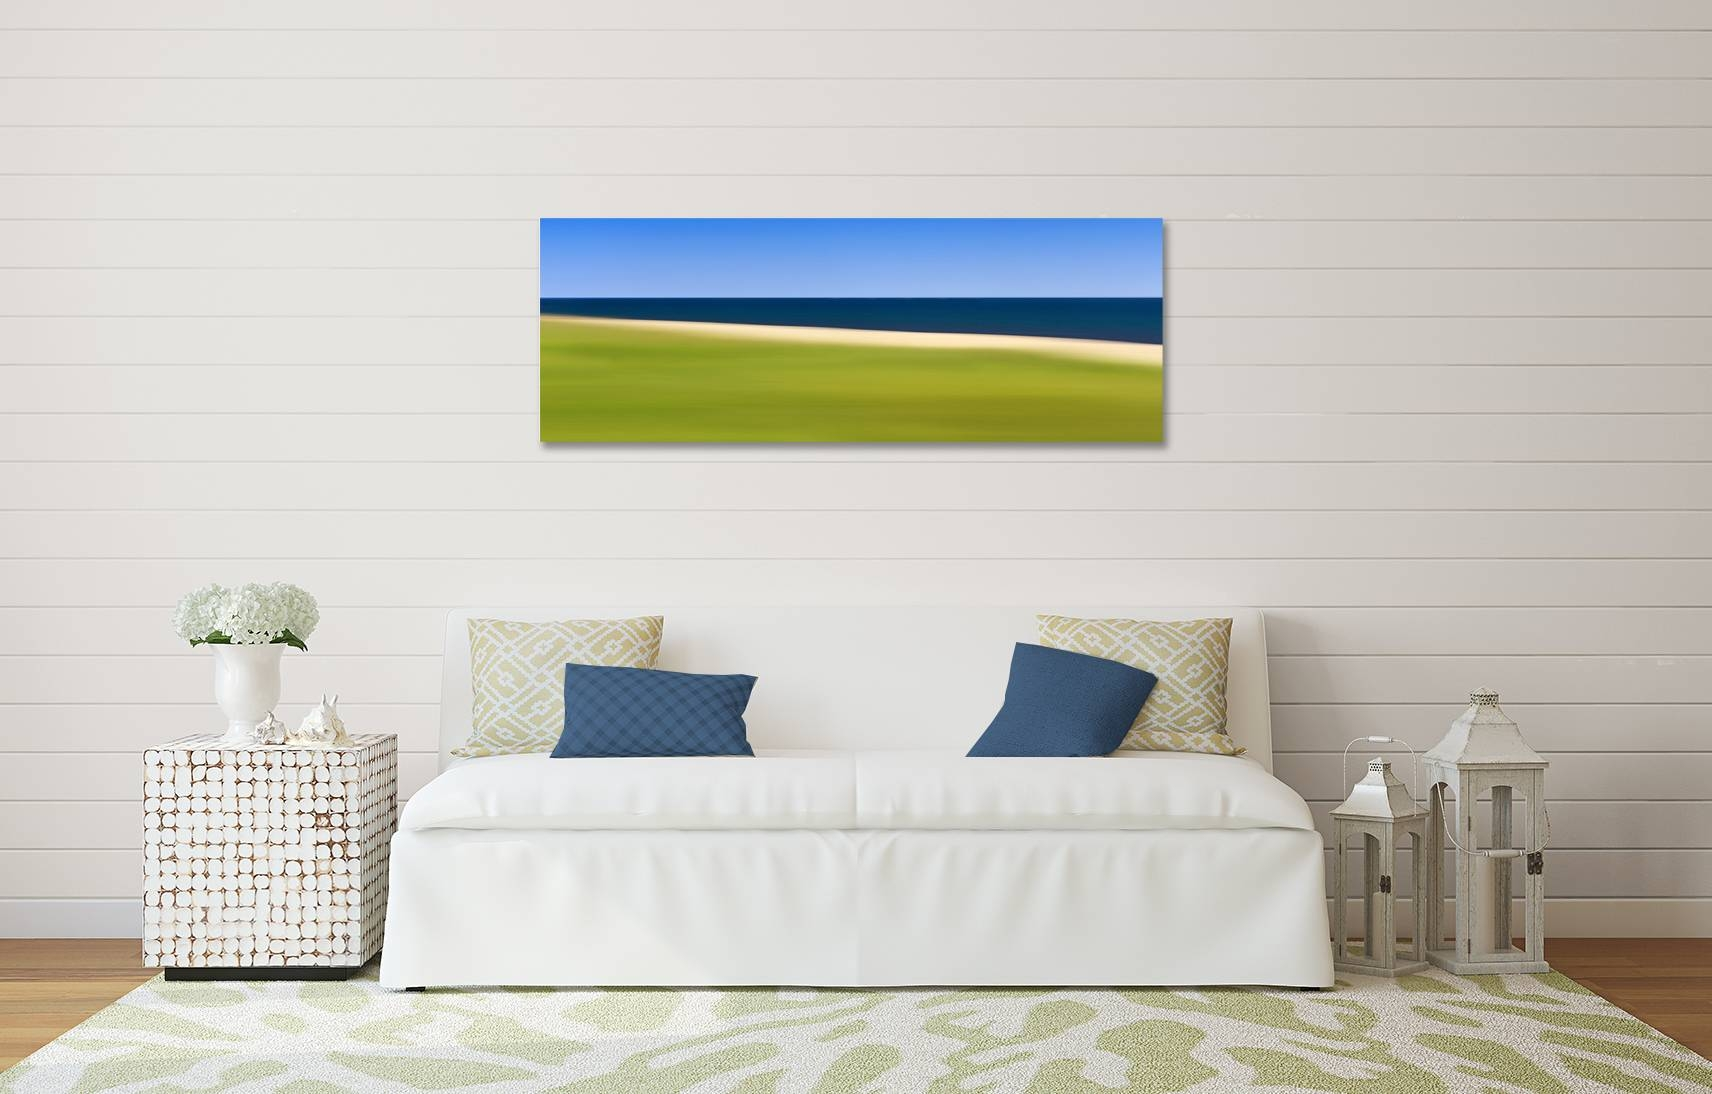 Fine Art Prints For Sale | Abstract Art, Large Canvas Wall Art With Regard To Most Popular Coastal Wall Art (View 4 of 12)